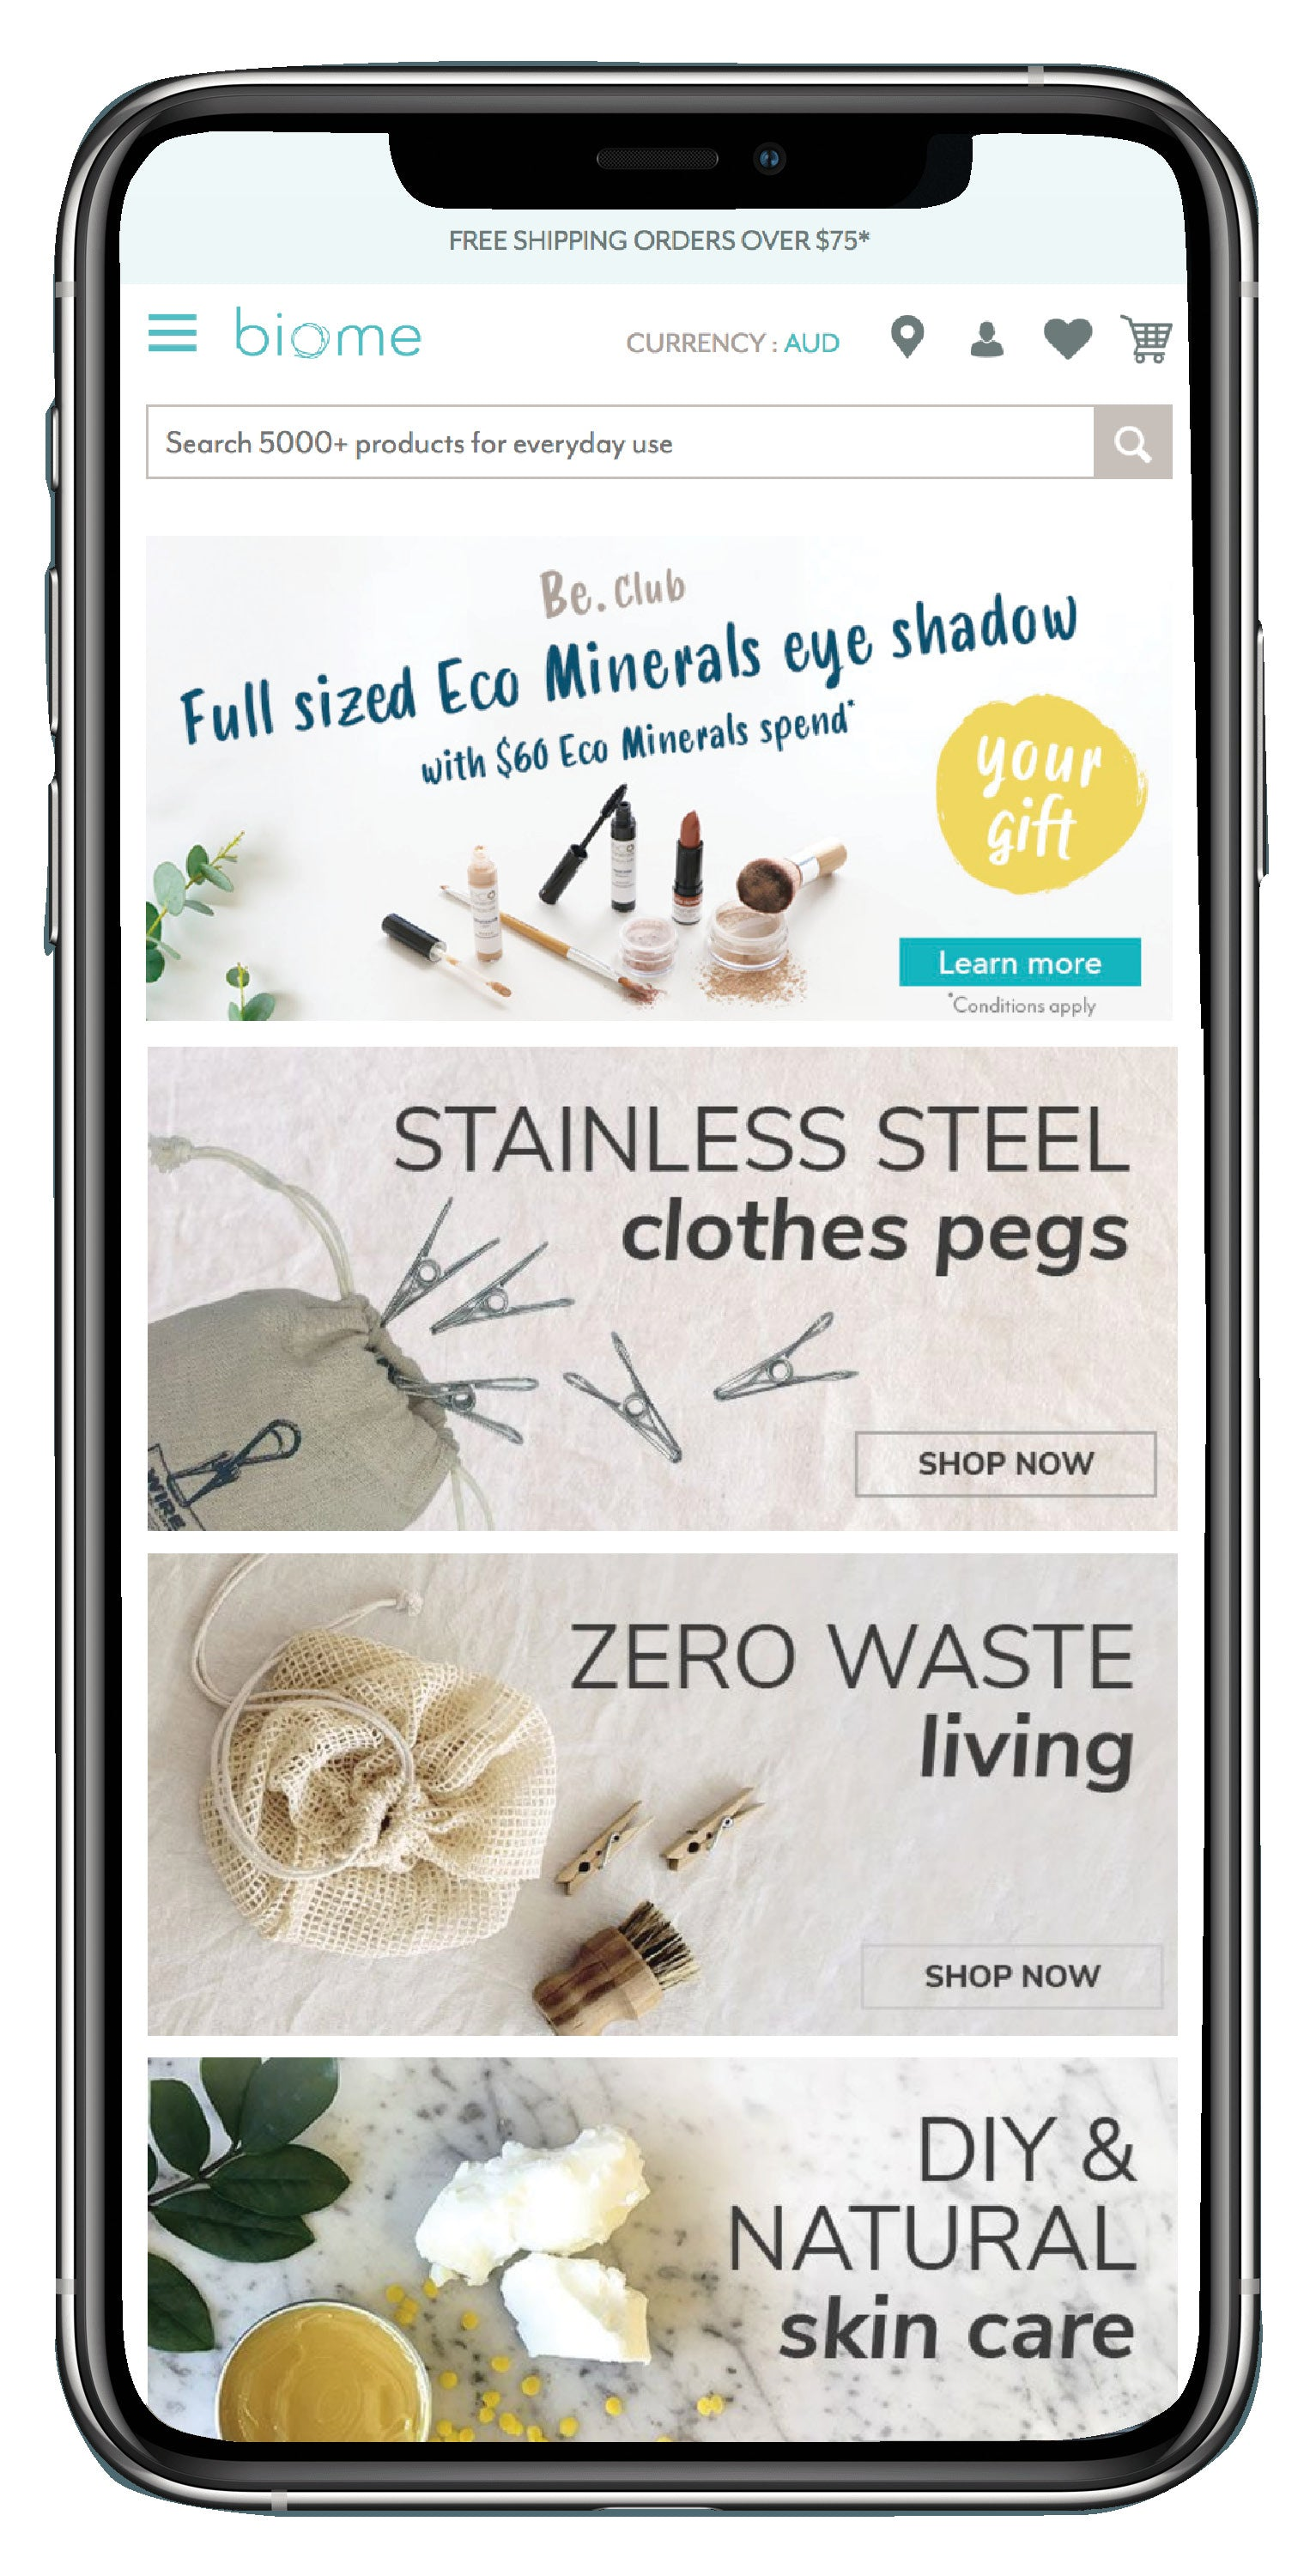 Biome - Sustainable ethical living - OwnMuse.com